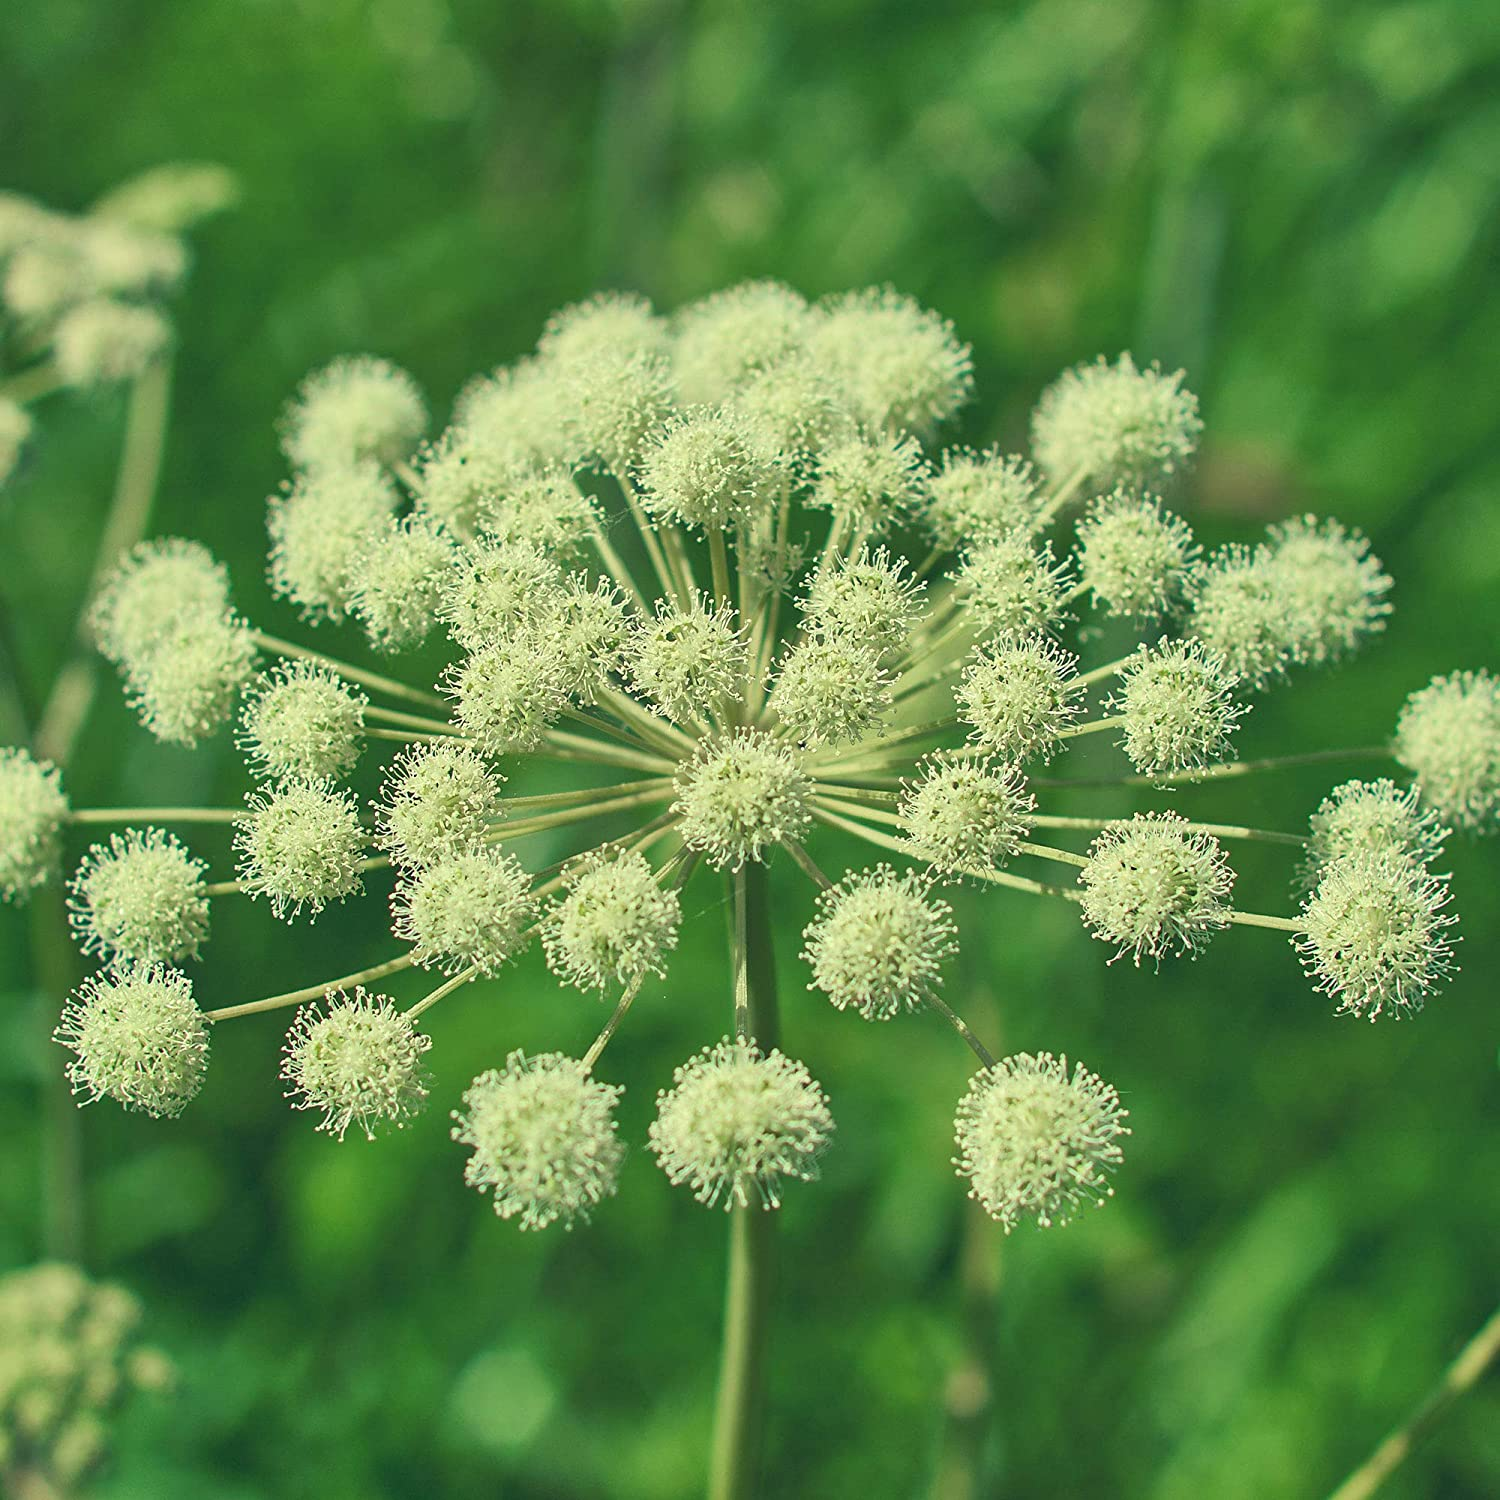 Angelica Seeds - 1 Oz ~8,600 Seeds - Angelica Archangelica - Non-GMO Medicinal & Culinary Herb Garden Seeds - Heirloom Angelica Herb Seeds for Non-GMO Medicinal Tea & Annual Culinary Herb Gardens